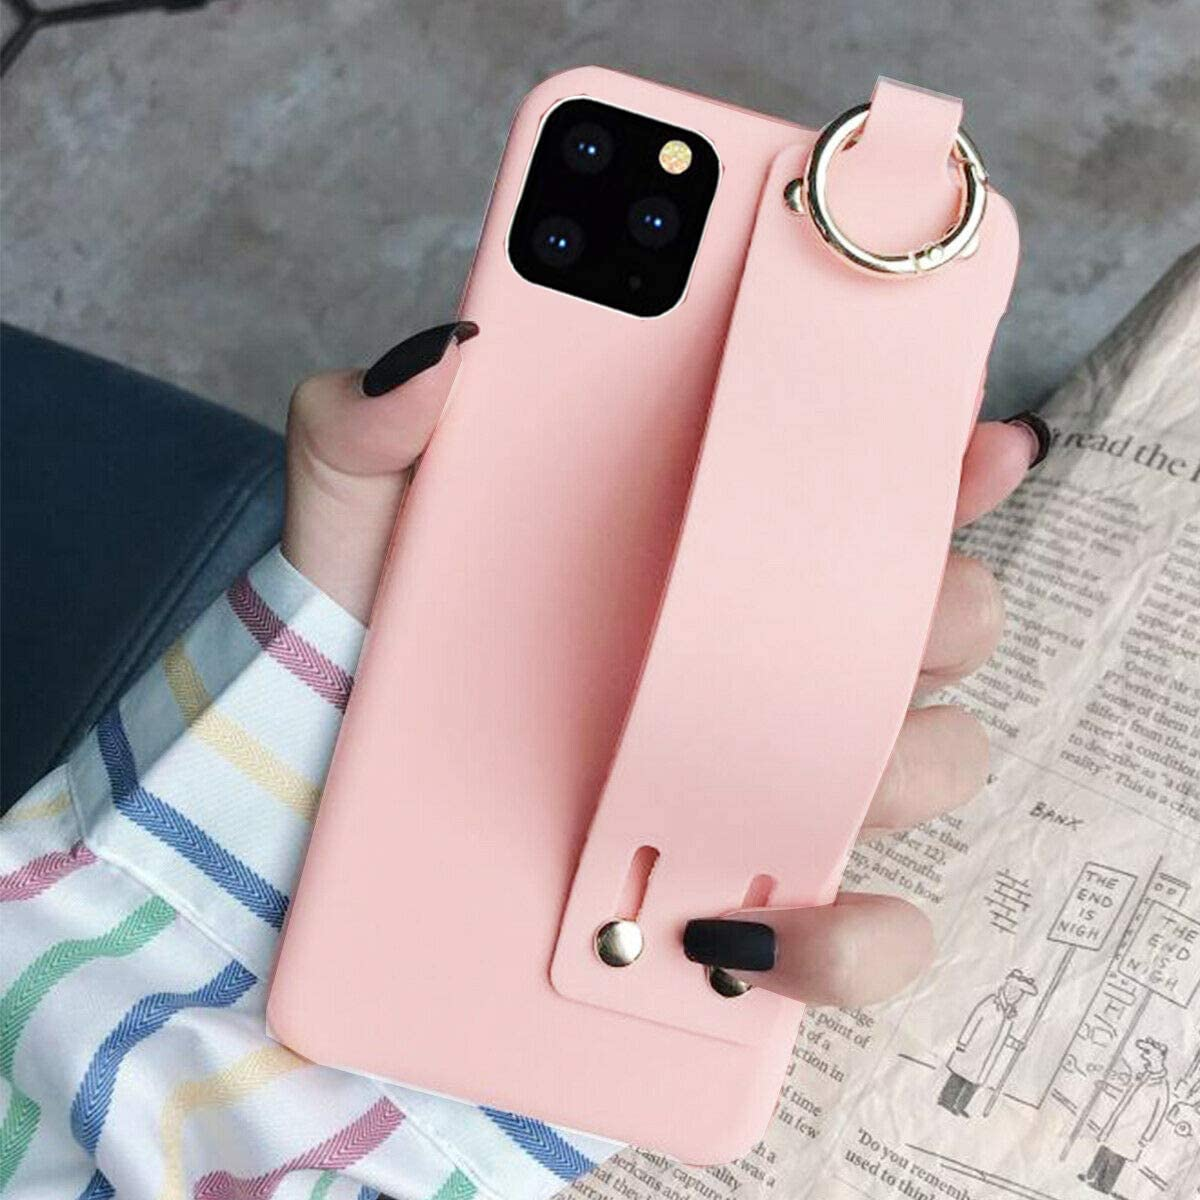 Topwin Hand Strap Case Compatible with iPhone 11 Pro Max, Soft Gel Rubber with Adjustable Wrist Strap Handy Belt Loop Kickstand Viewing Stand Feature for Apple iPhone 11 Pro Max 6.5'' 2019 (Pink)